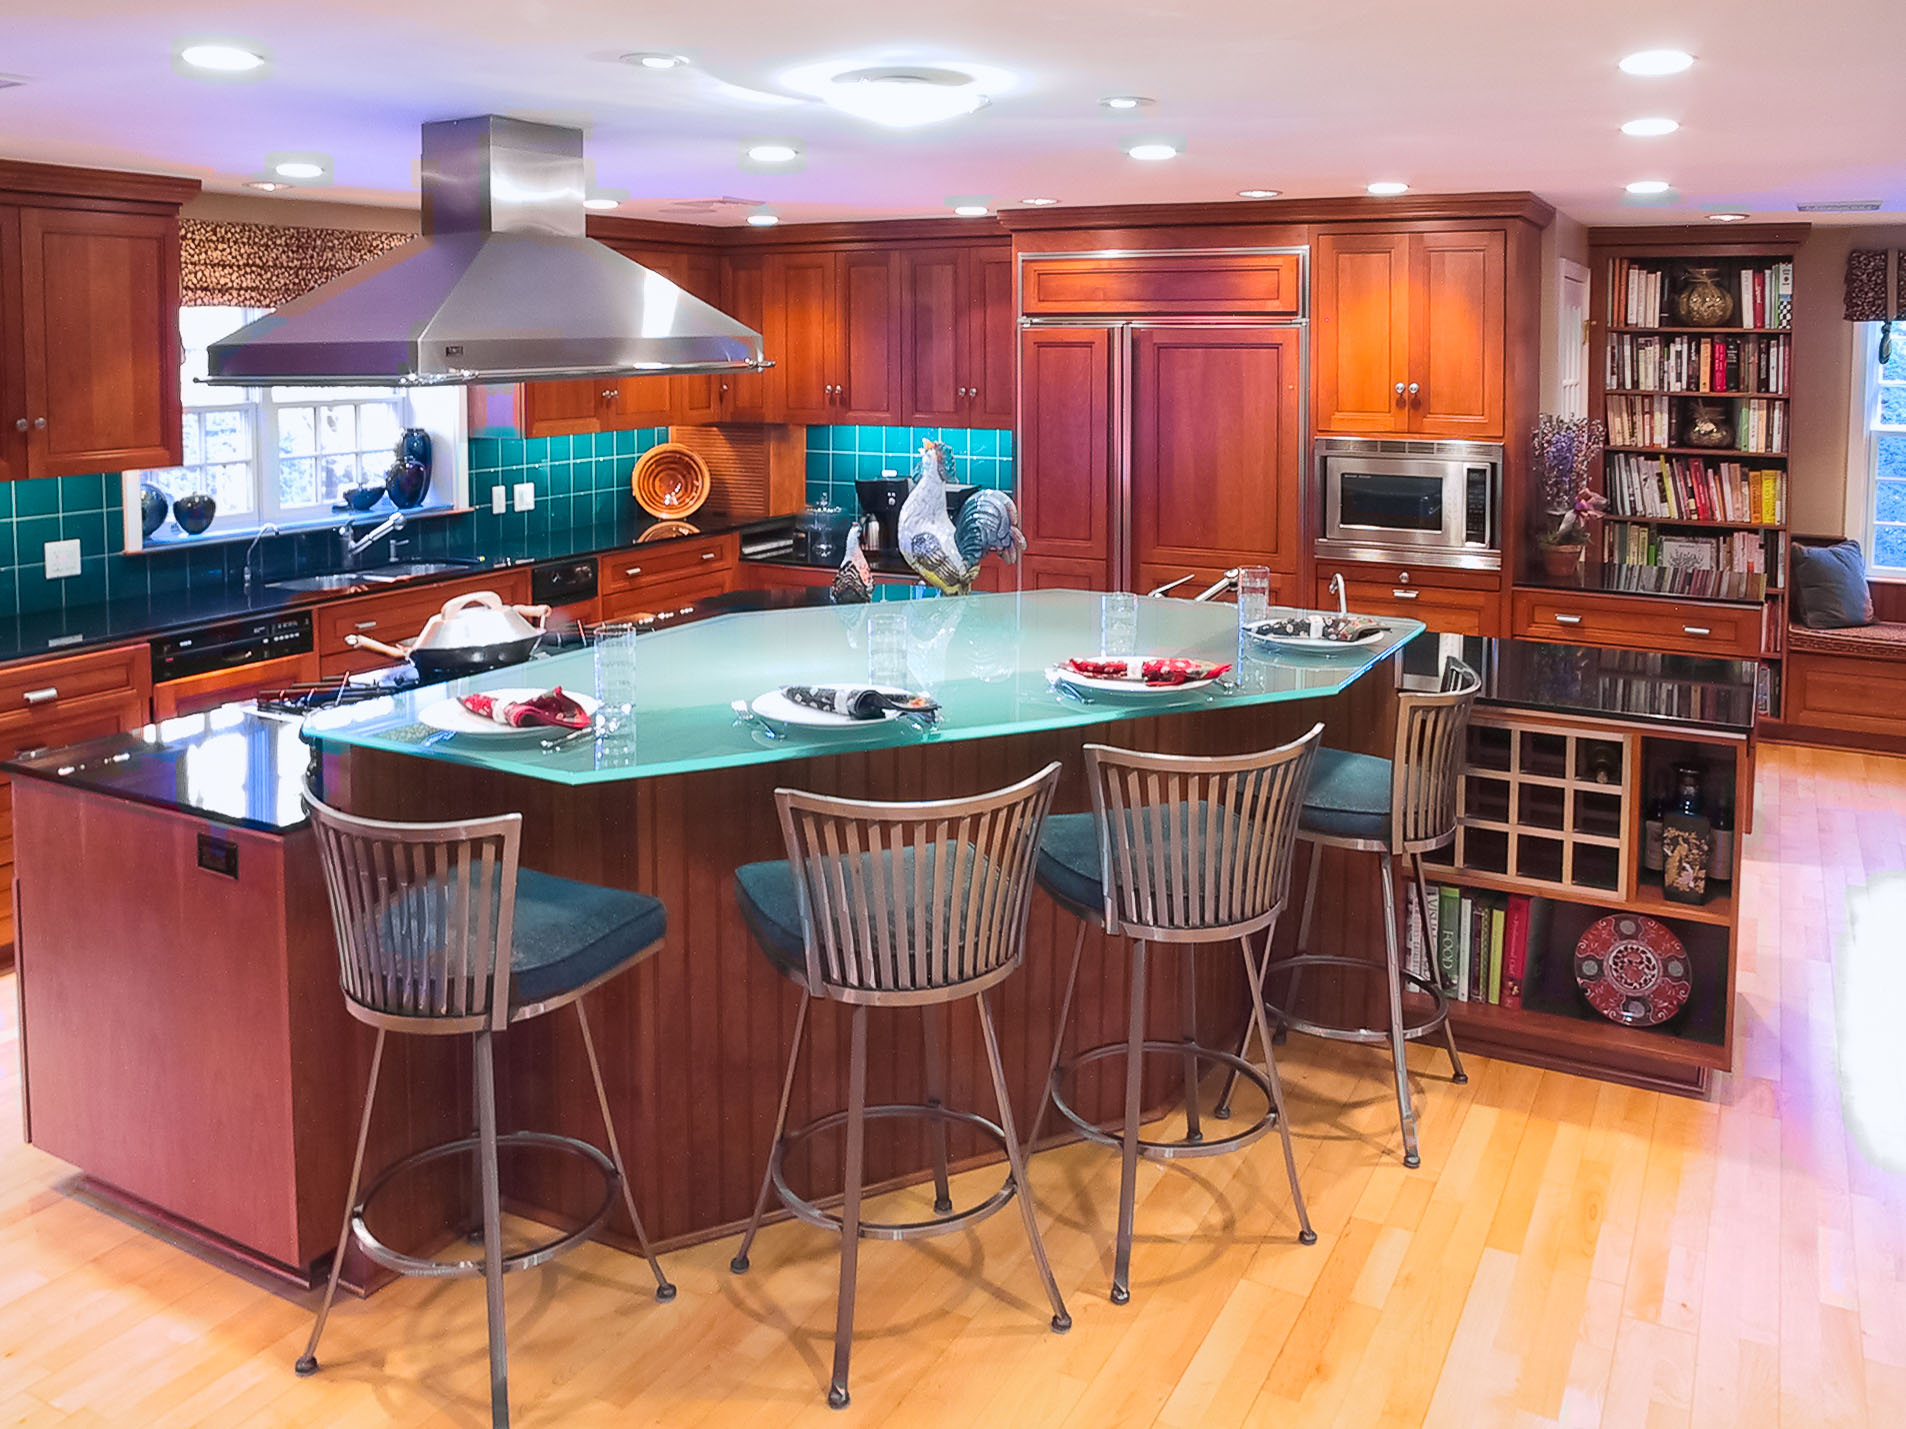 Kitchen Island with glass countertop